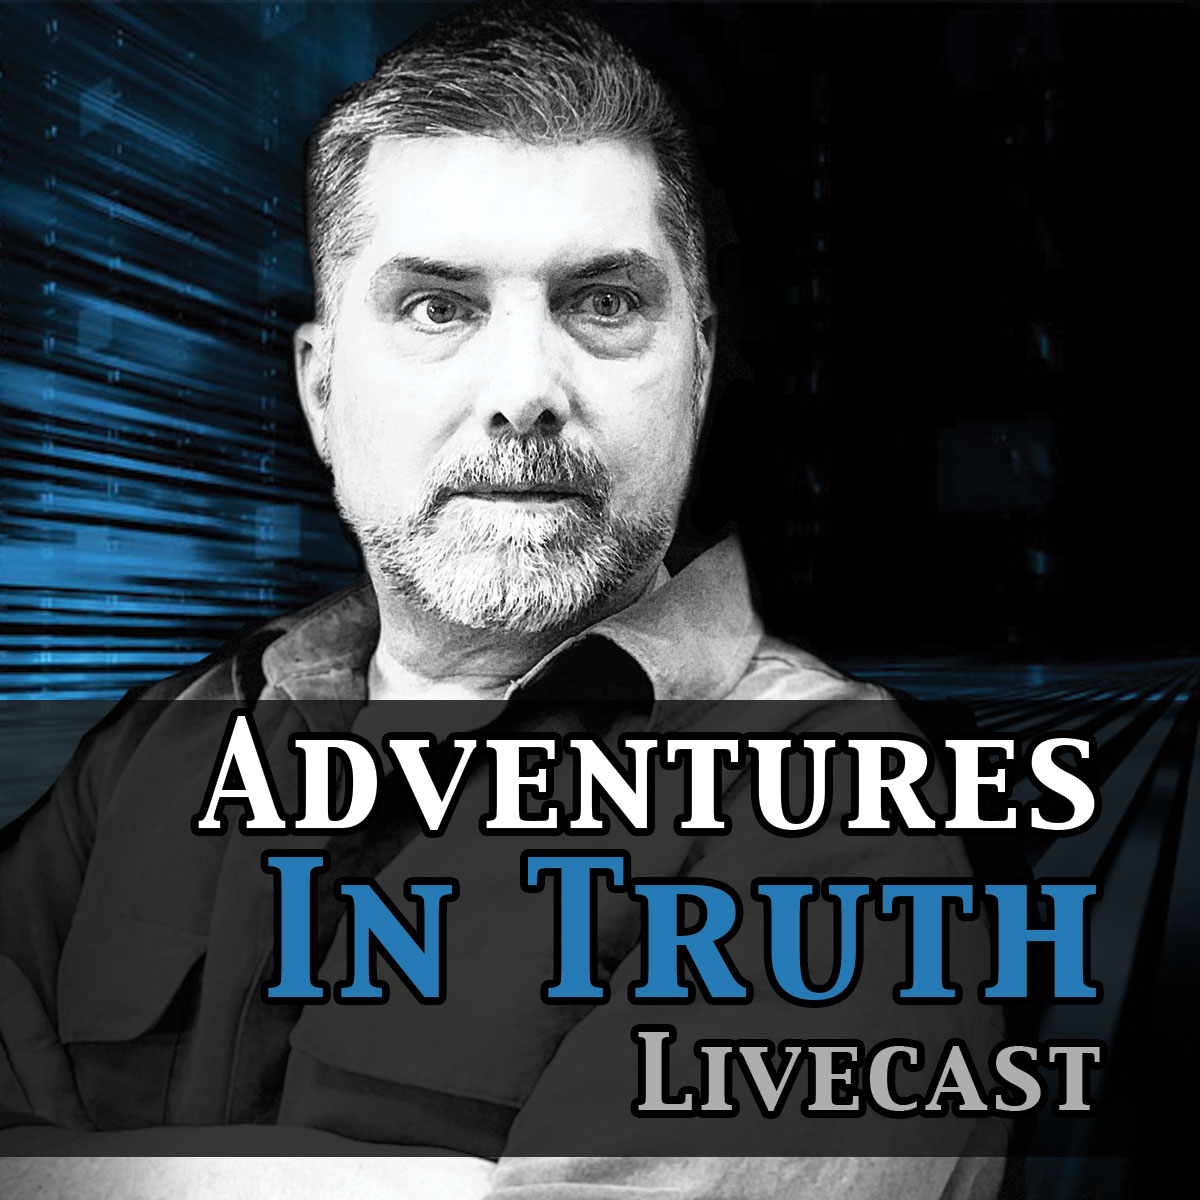 Adventures in Truth Podcast Podcast with Adventures in Truth hosted by Dr. Jeffrey Smith and Jim Case on Spiritual Truths Life principles Transform  inLife Experience